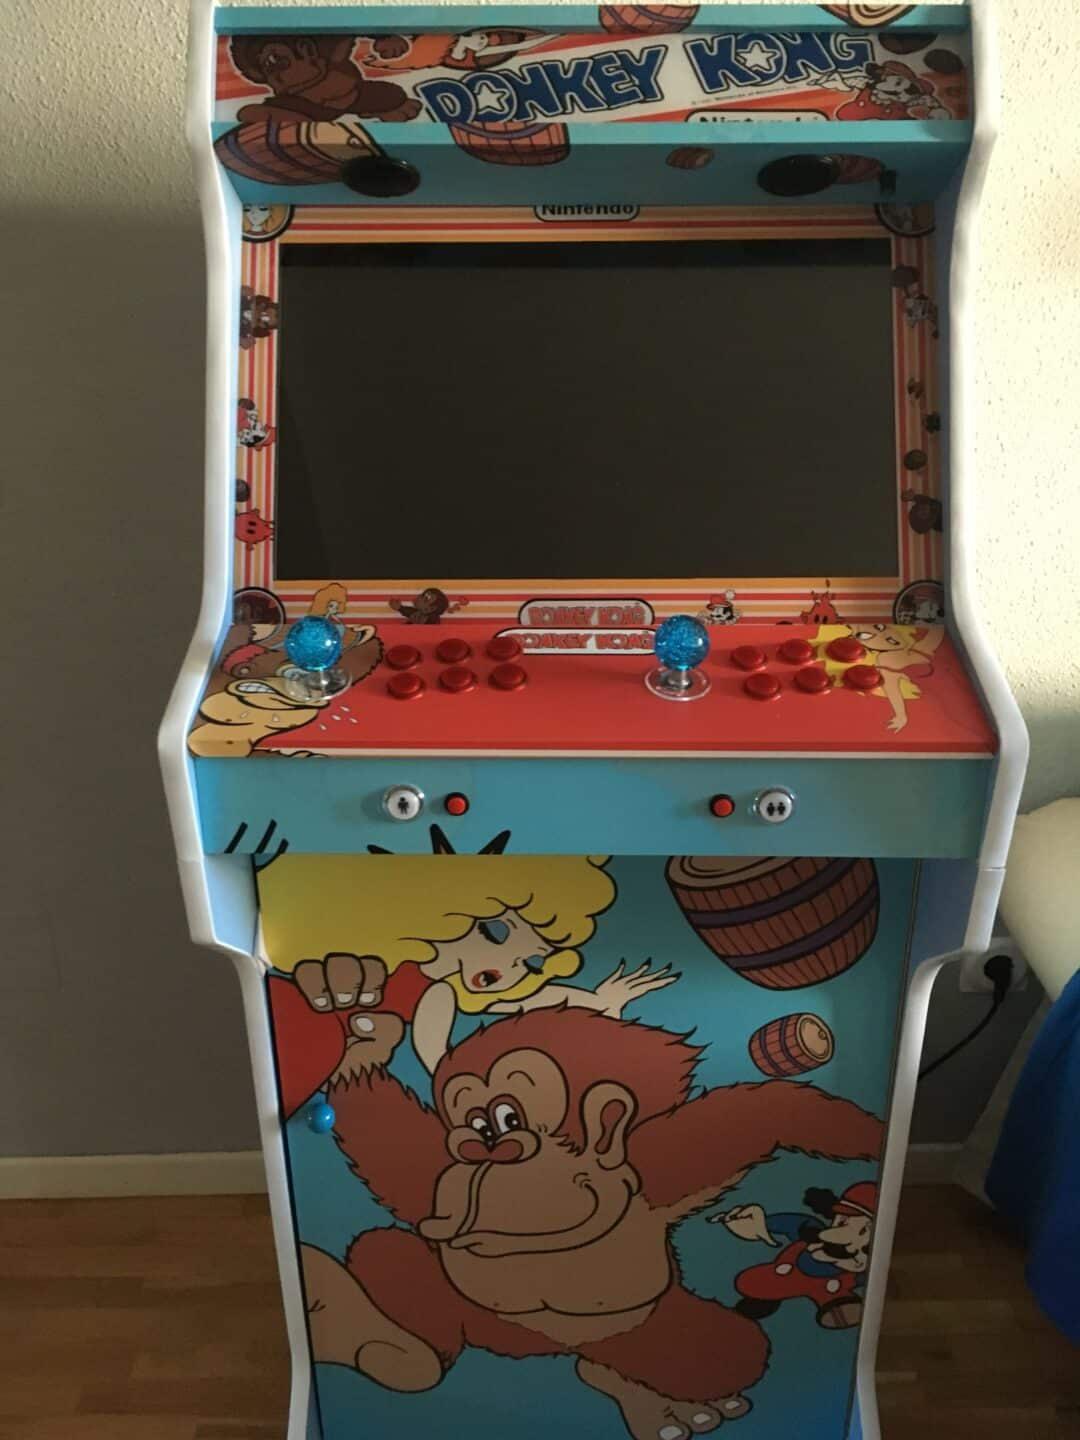 Bartop + Stand with custom design by Donkey Kong